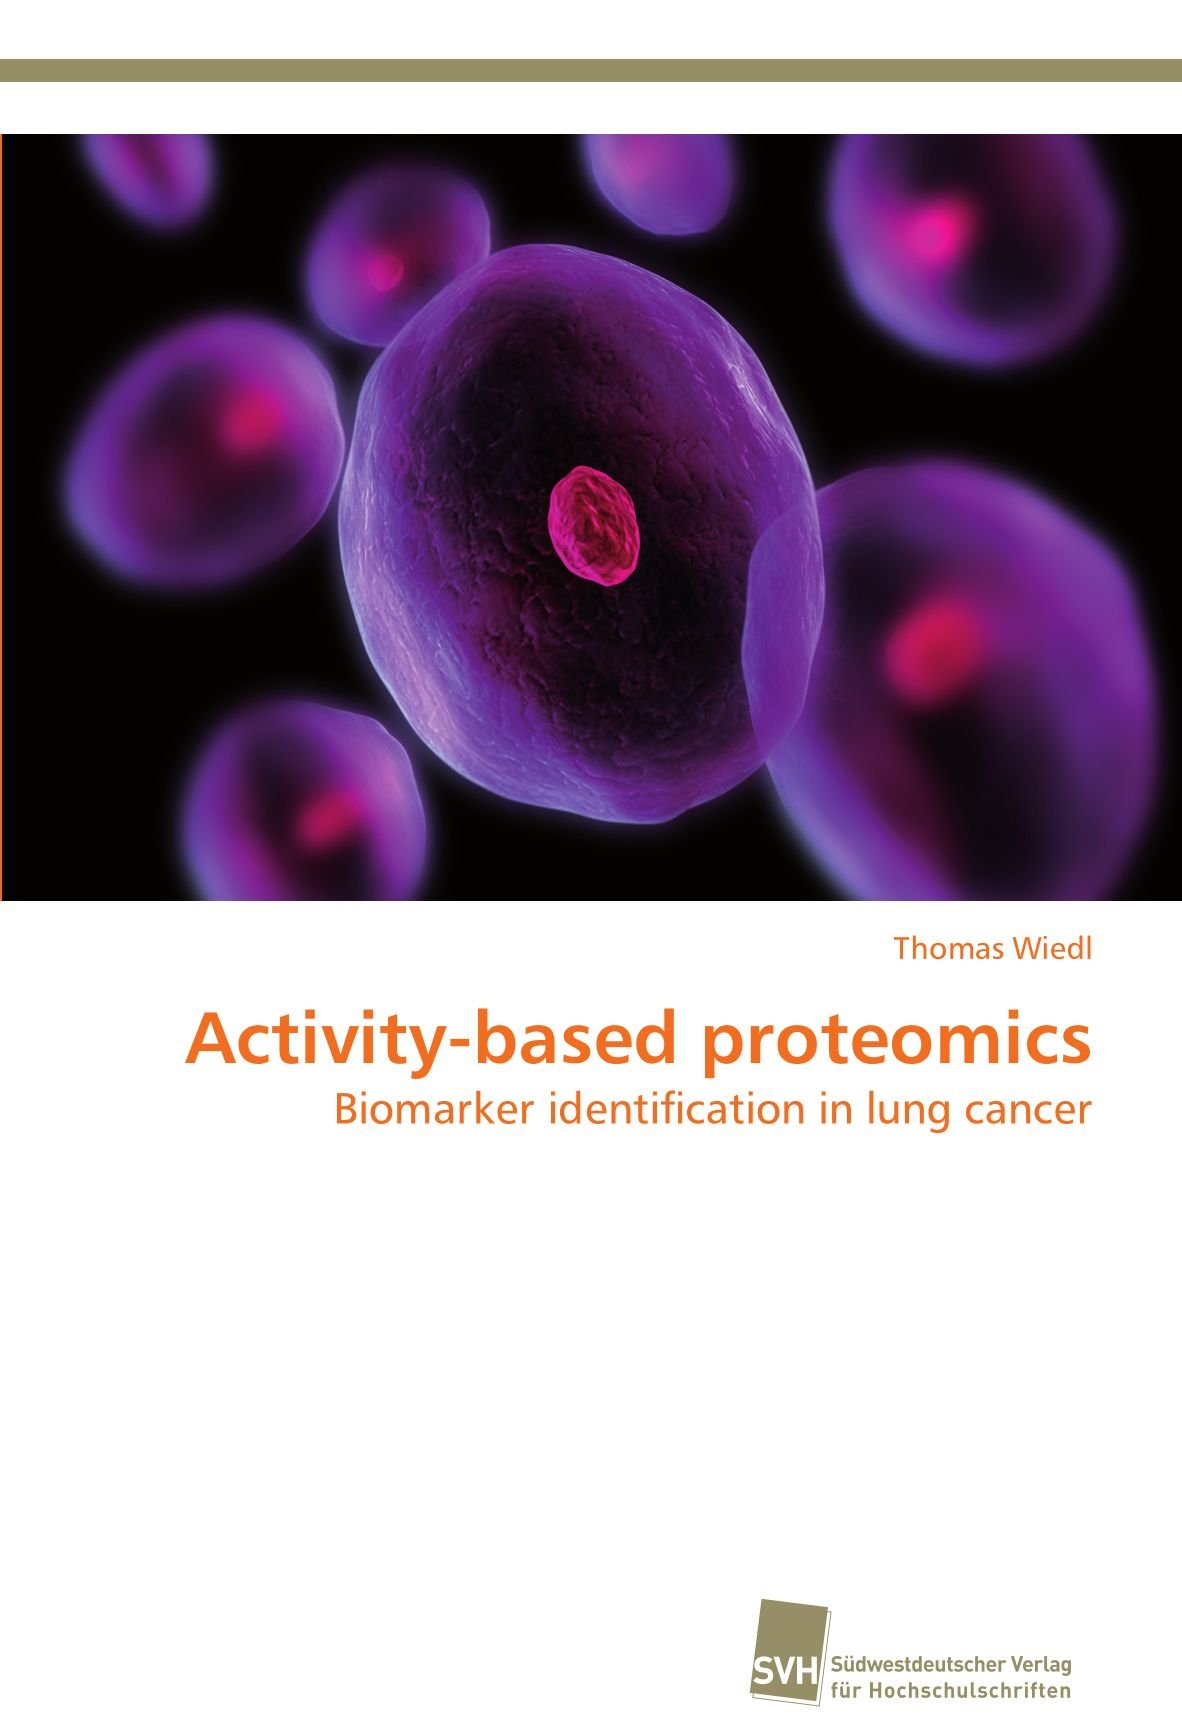 Activity-based proteomics: Biomarker identification in lung